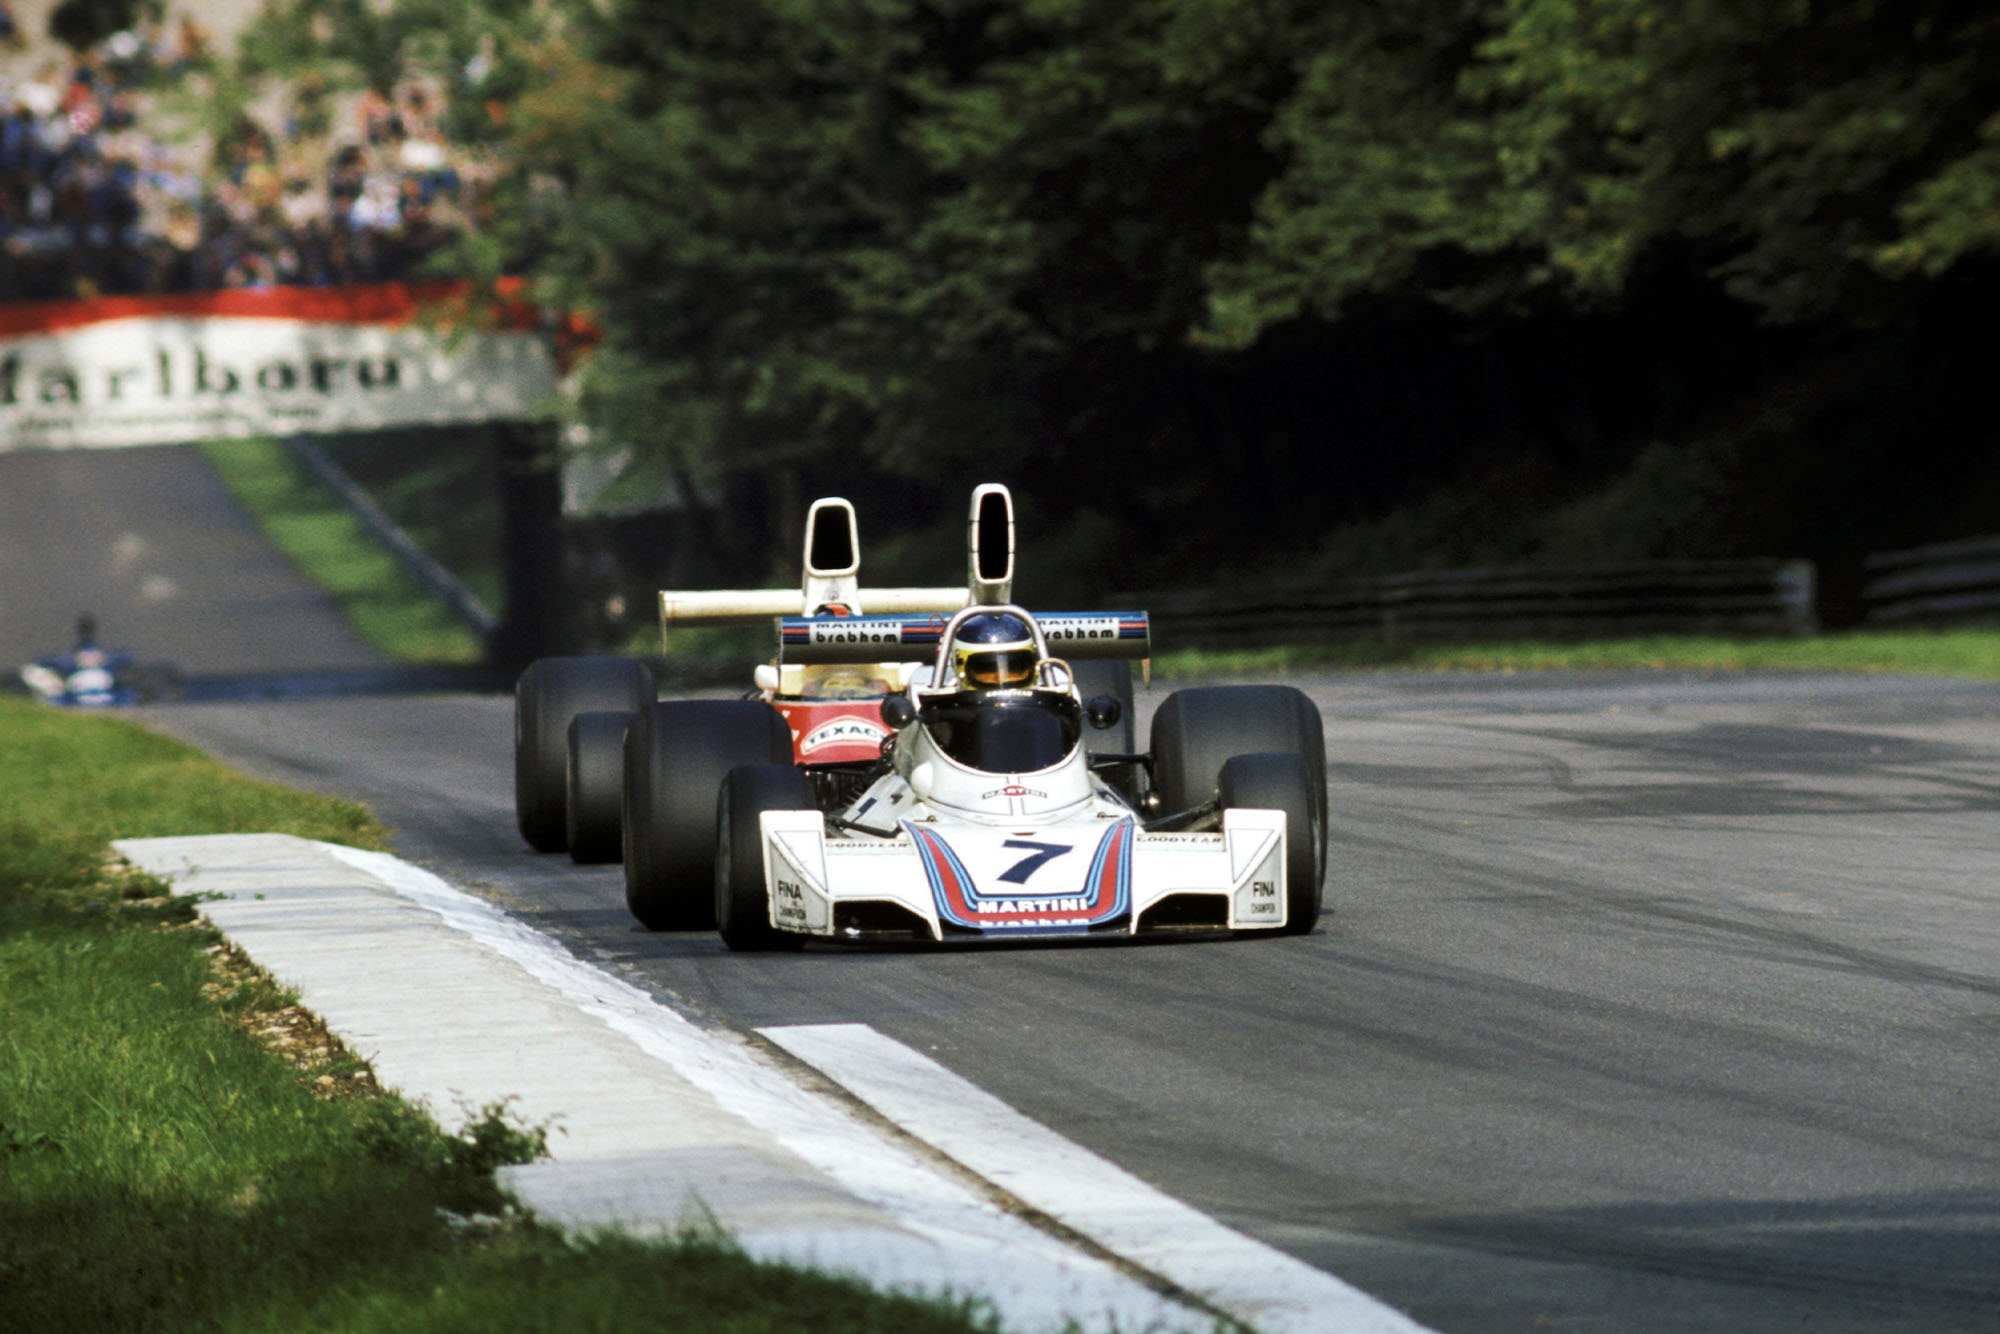 Carlos Reutemann competing for Brabham at the 1975 Italian Grand Prix.